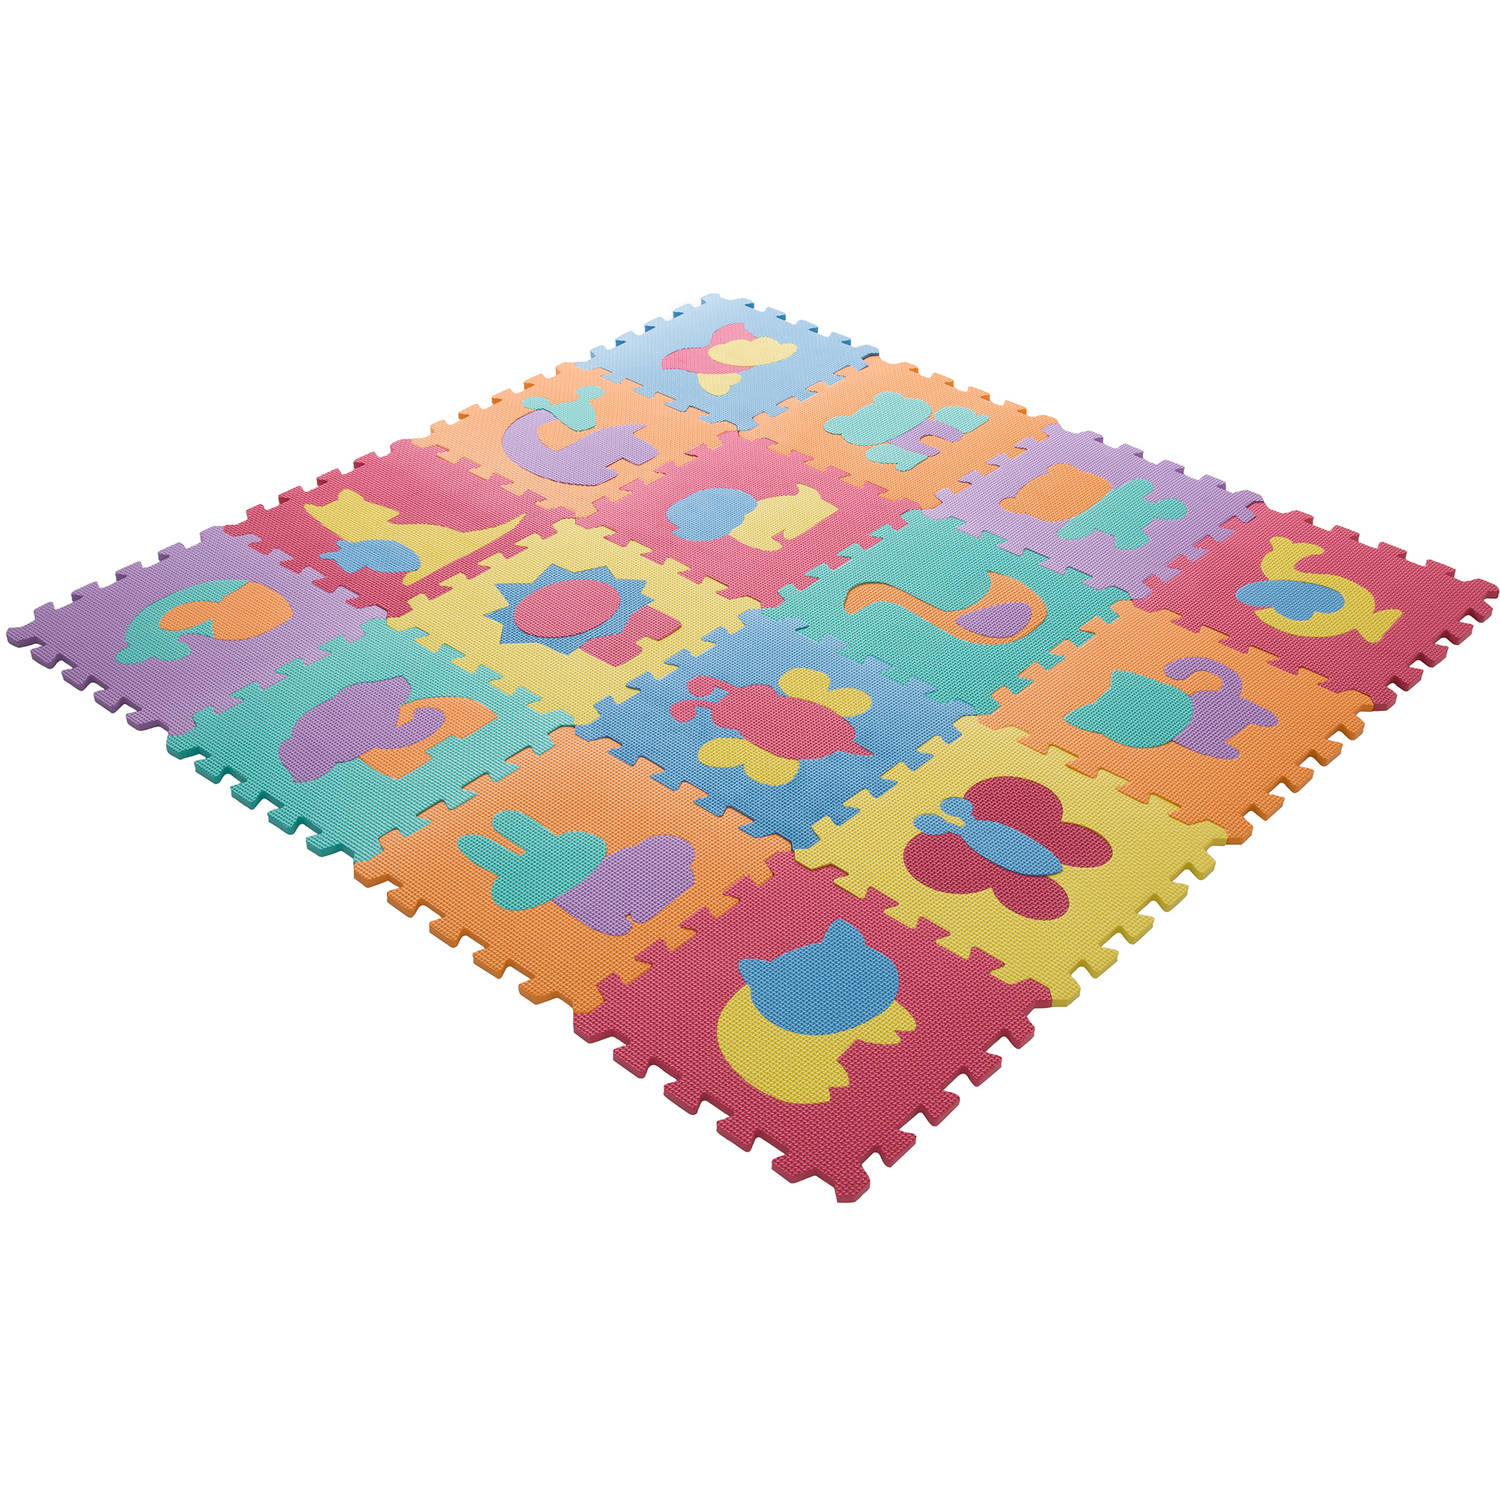 Interlocking Foam Tile Play Mat with Animals - Nontoxic Children's Multicolor Puzzle Tiles for Playrooms, Nurseries, Gyms and More by Hey! Play!